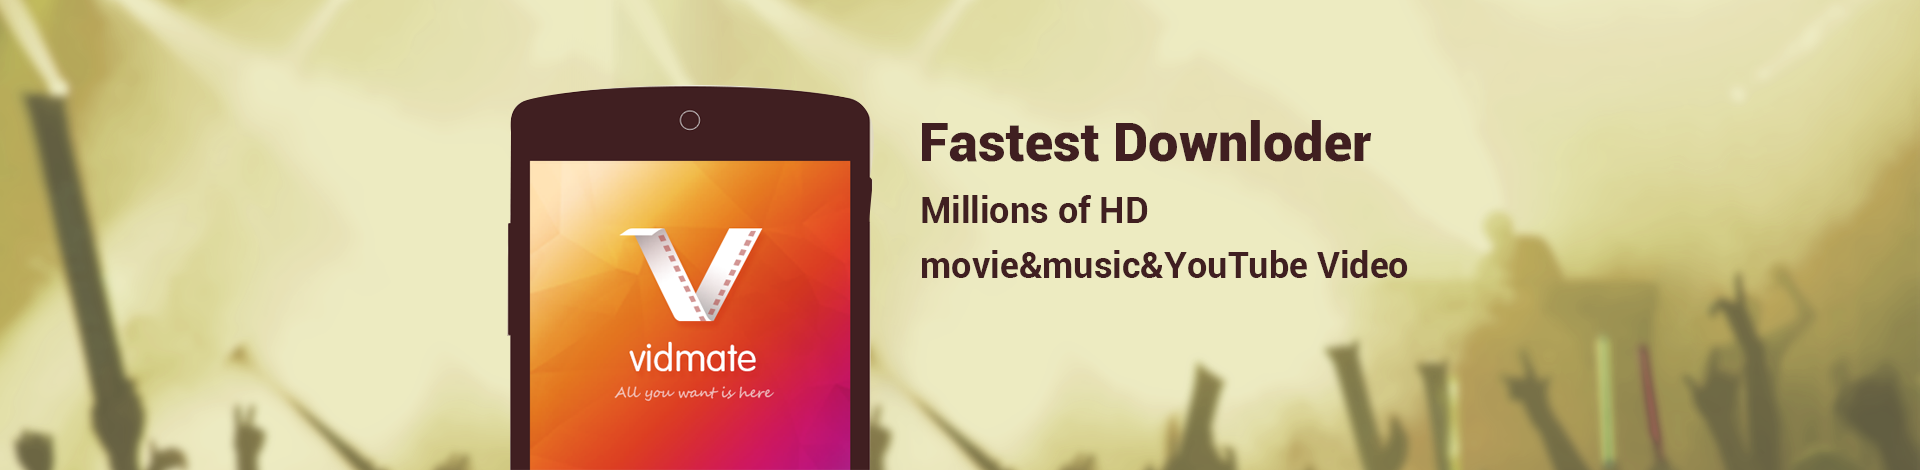 Vidmate - Vidmate Youtube Downloader Live Tv On Mobile Free Video And Music Download For Mobile